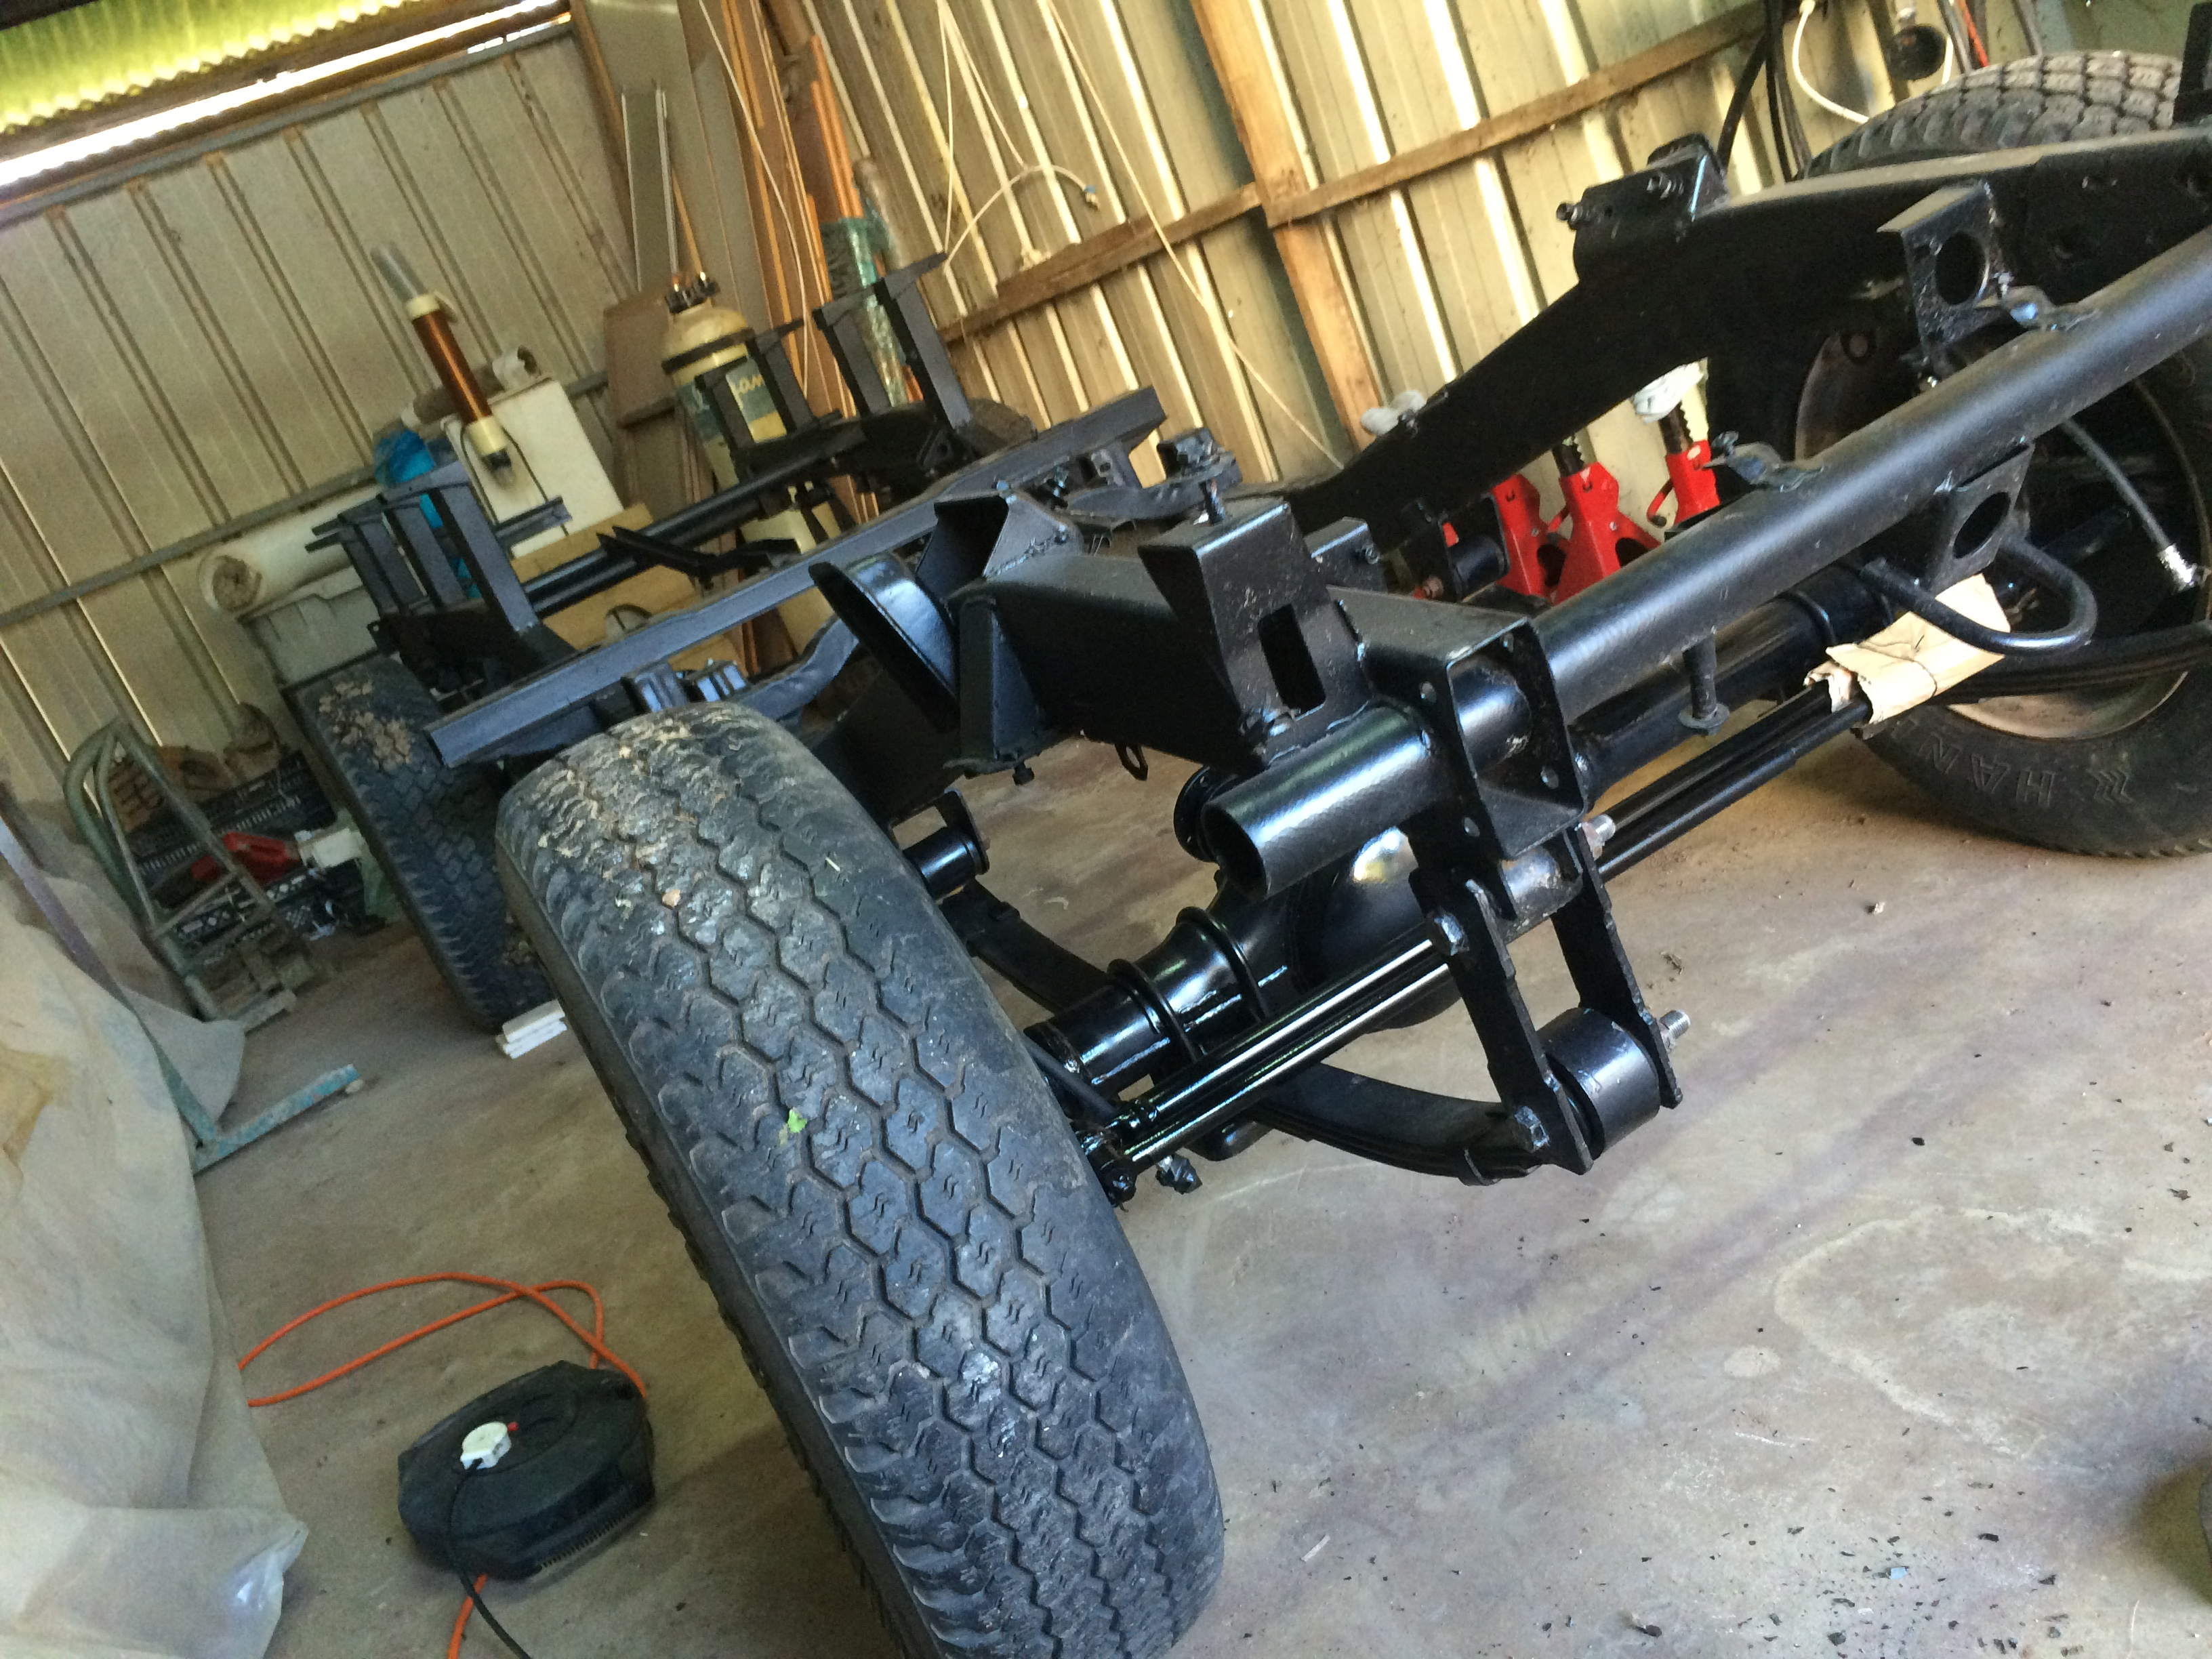 SJ410k rolling Chassis